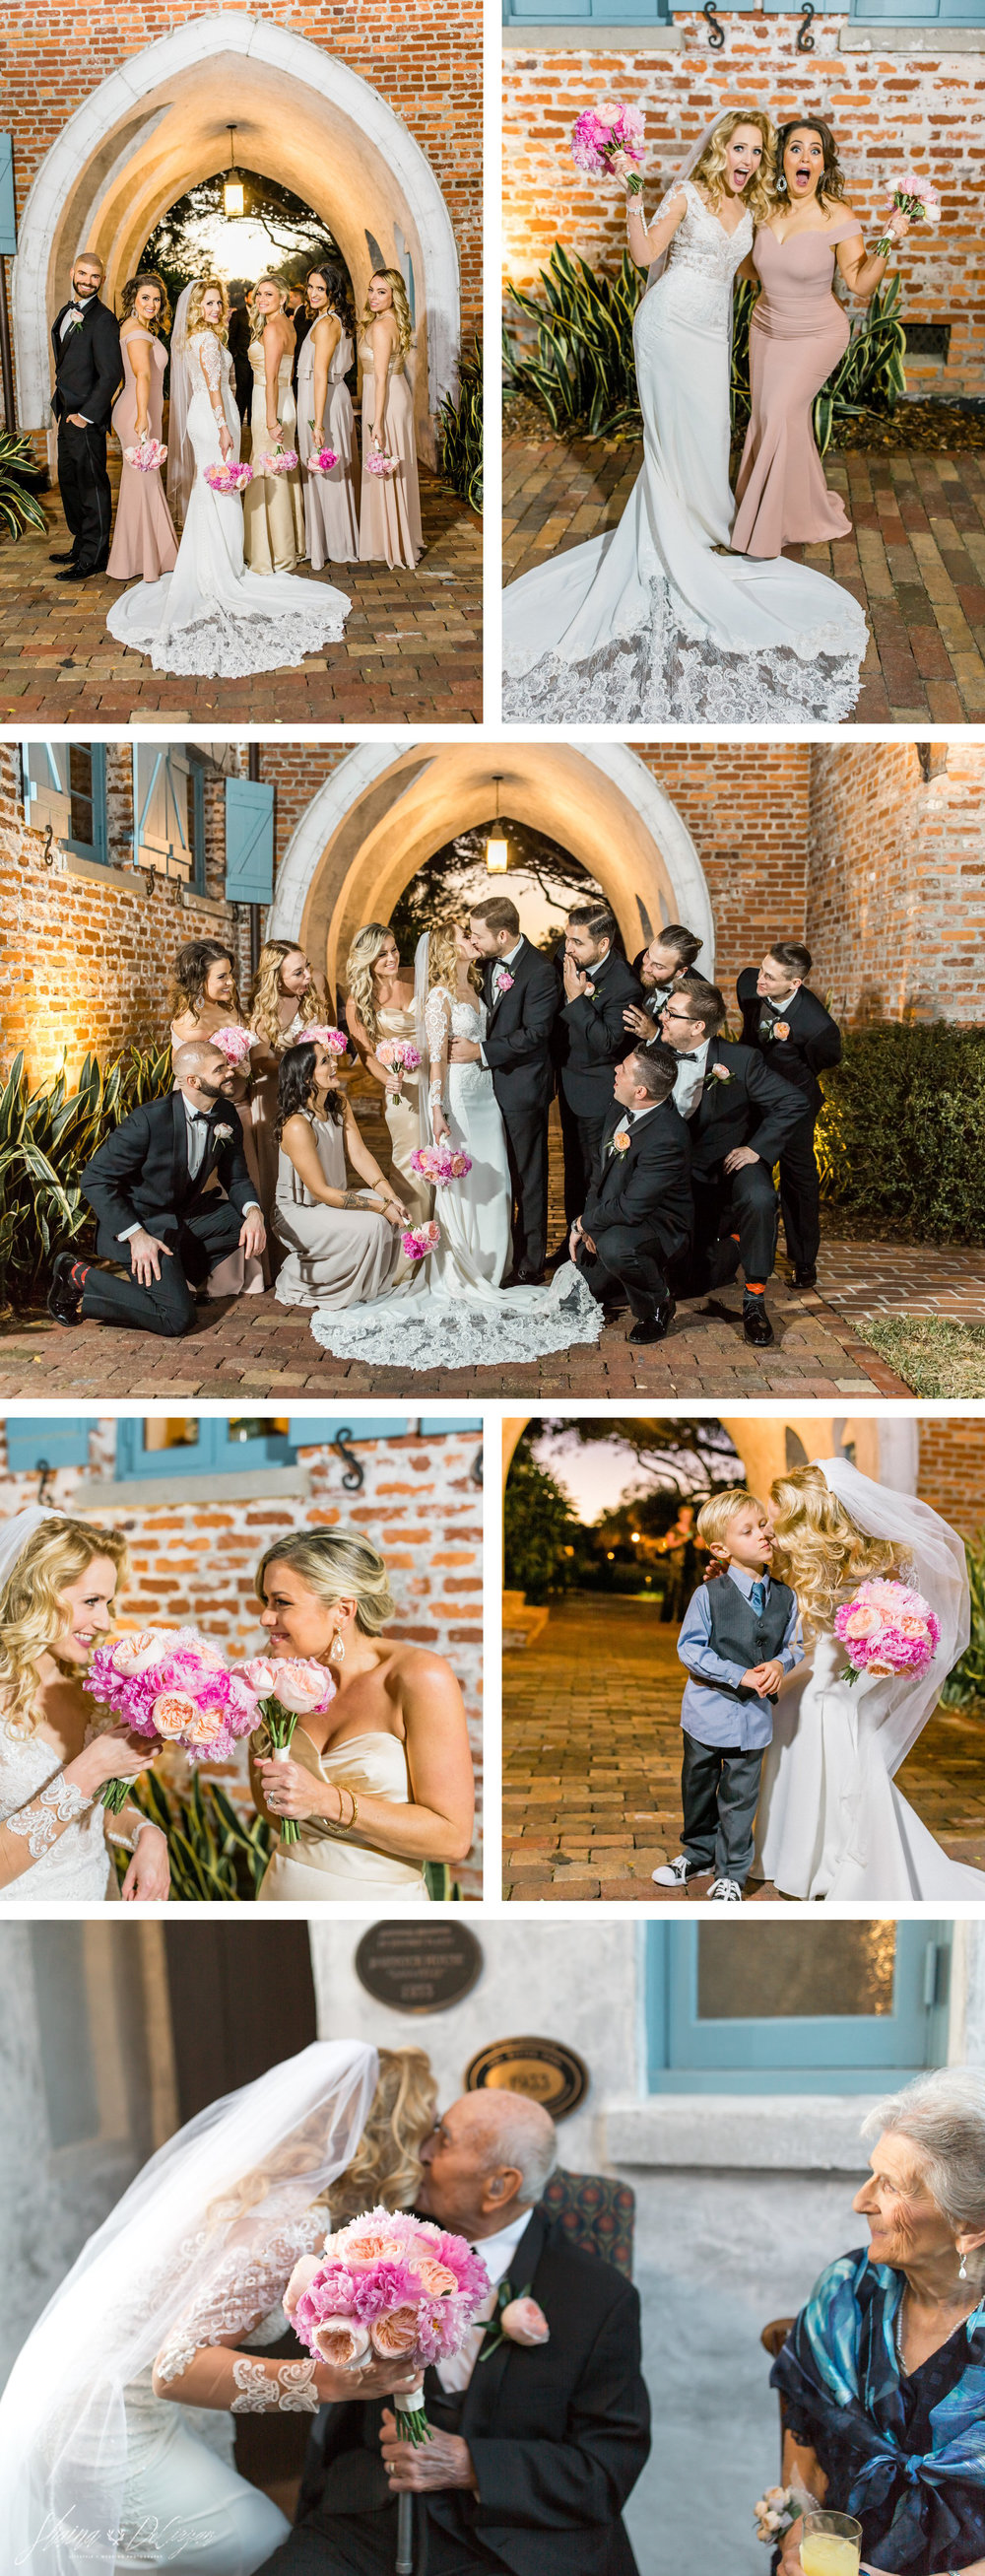 Jamie Claire + Ben's French Rustic Casa Feliz Wedding | February 10th, 2017  | Wedding Planner: Lindsay Feist of Adore Amore | Wedding Venue: Casa Feliz Historic Home, Winter Park, Florida | Catering: Arthur's Catering | Floral design: Florida Flowers & Orchids | DJ: The Fun Factory | Cake: Eternally Sweet | Wedding Gown: Essense of Australia | Bridal Boutique: Casa Di Bella | Photography: Shaina DeCiryan Photography #winterparkwedding #casafelizwedding